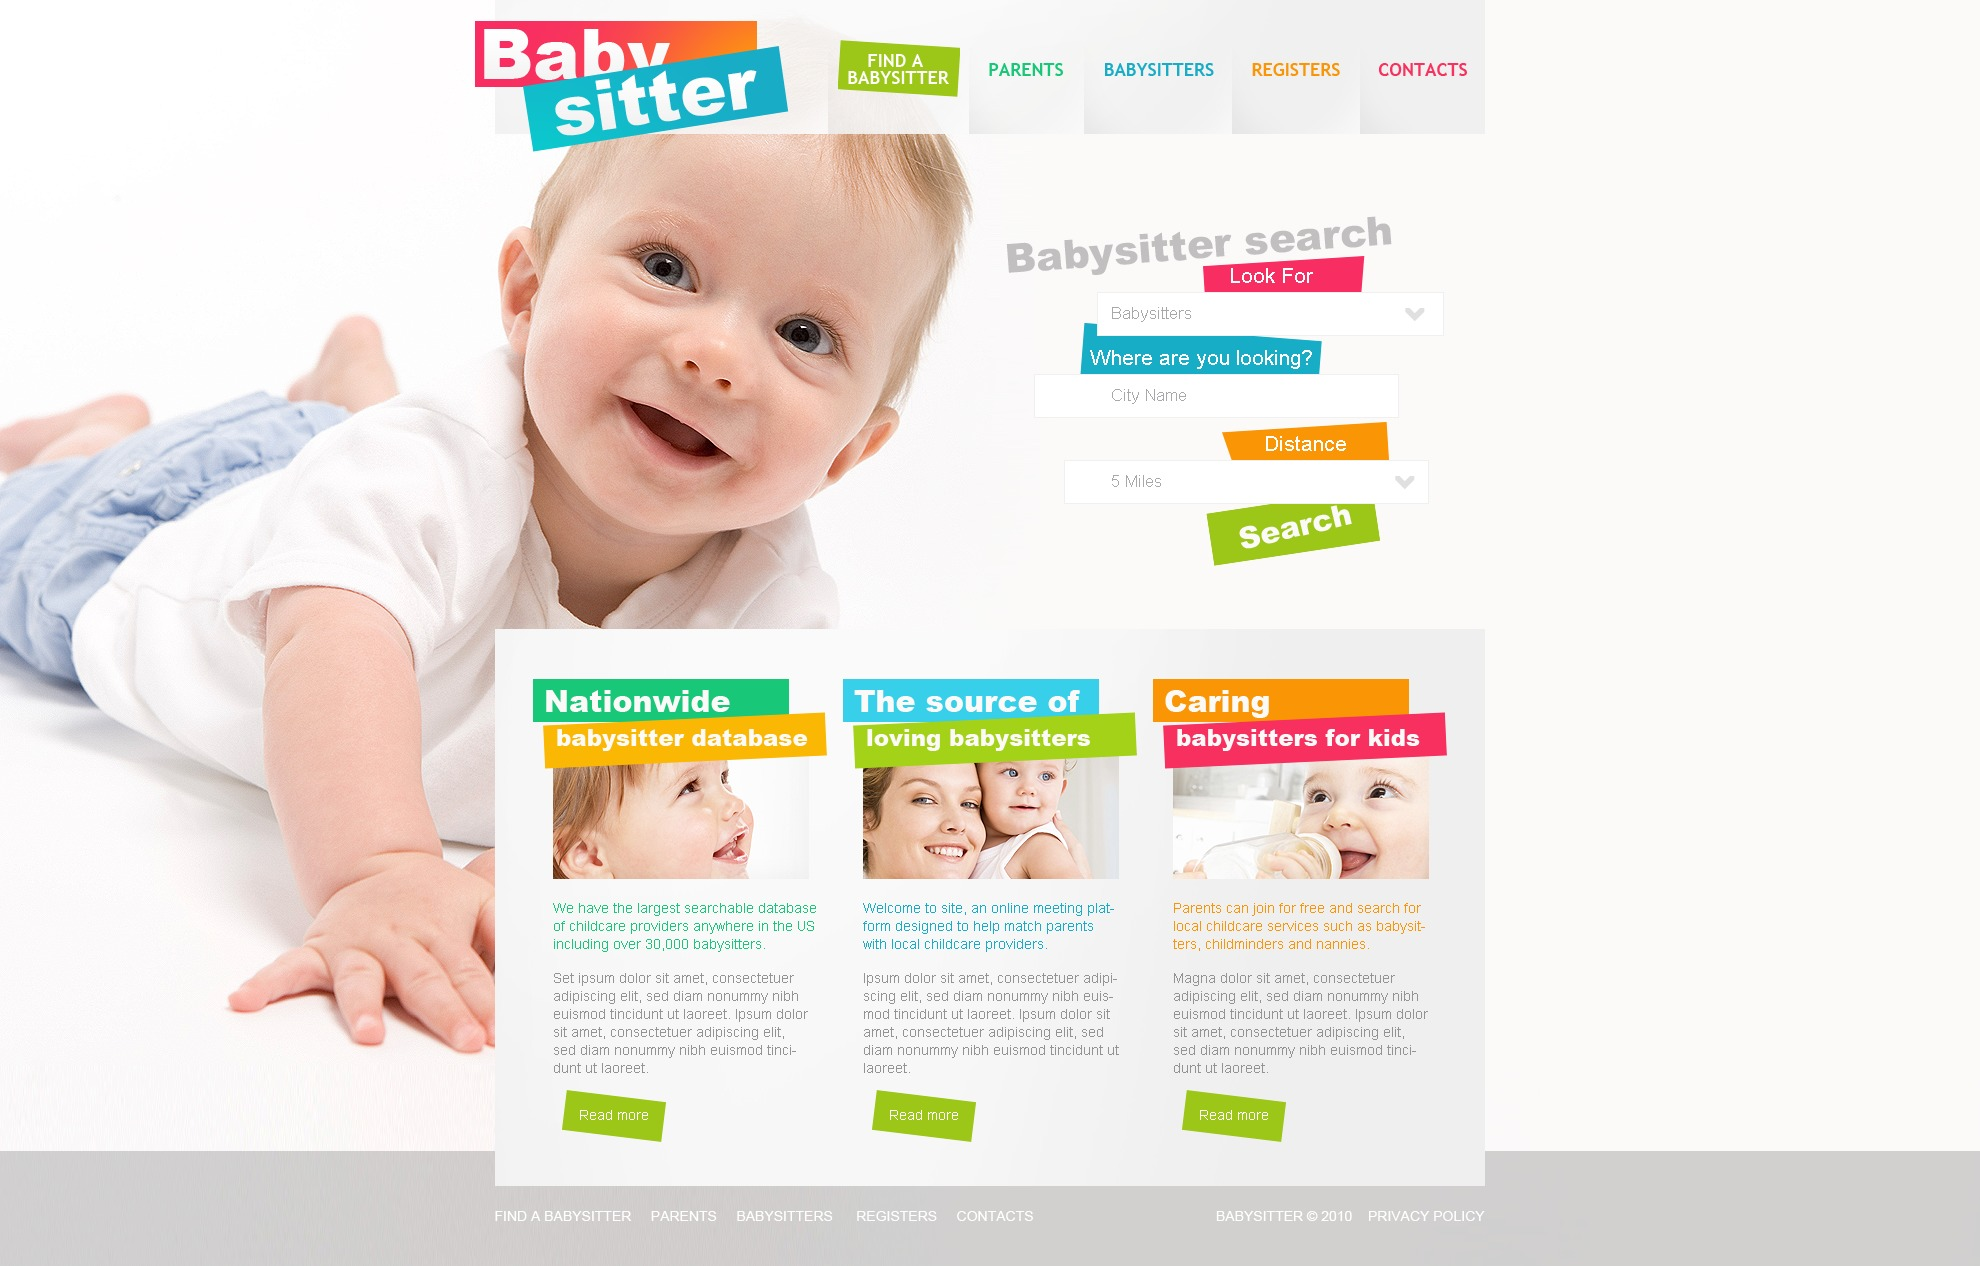 The Babysitter Nanny PSD Design 54262, one of the best PSD templates of its kind (family, most popular, wide), also known as babysitter nanny PSD template, nurse PSD template, baby PSD template, children PSD template, child PSD template, kids PSD template, parents PSD template, family care PSD template, help PSD template, resume PSD template, services company PSD template, profile PSD template, prices PSD template, order PSD template, harmony PSD template, hearth PSD template, home PSD template, relationship PSD template, close care PSD template, happiness PSD template, education PSD template, youth PSD template, health PSD template, advices PSD template, event PSD template, entertainment PSD template, information PSD template, support PSD template, hom and related with babysitter nanny, nurse, baby, children, child, kids, parents, family care, help, resume, services company, profile, prices, order, harmony, hearth, home, relationship, close care, happiness, education, youth, health, advices, event, entertainment, information, support, hom, etc.